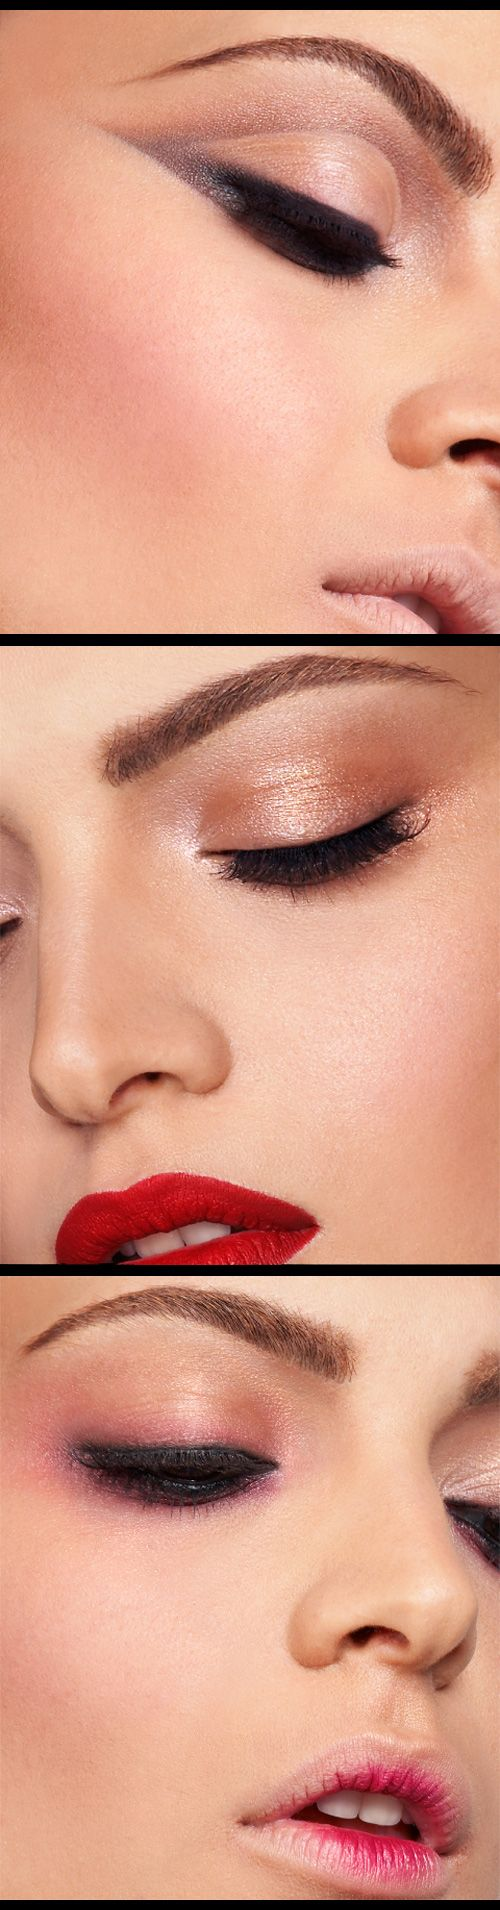 62 Best Vintage Images On Pinterest Fashion History Make Up Looks Inez Contour Plus Lipstick Riviera Blush The Middle Pic Is A Perfect Example Of How To Wear Red Focal Point Lips And Eyes Are Nude